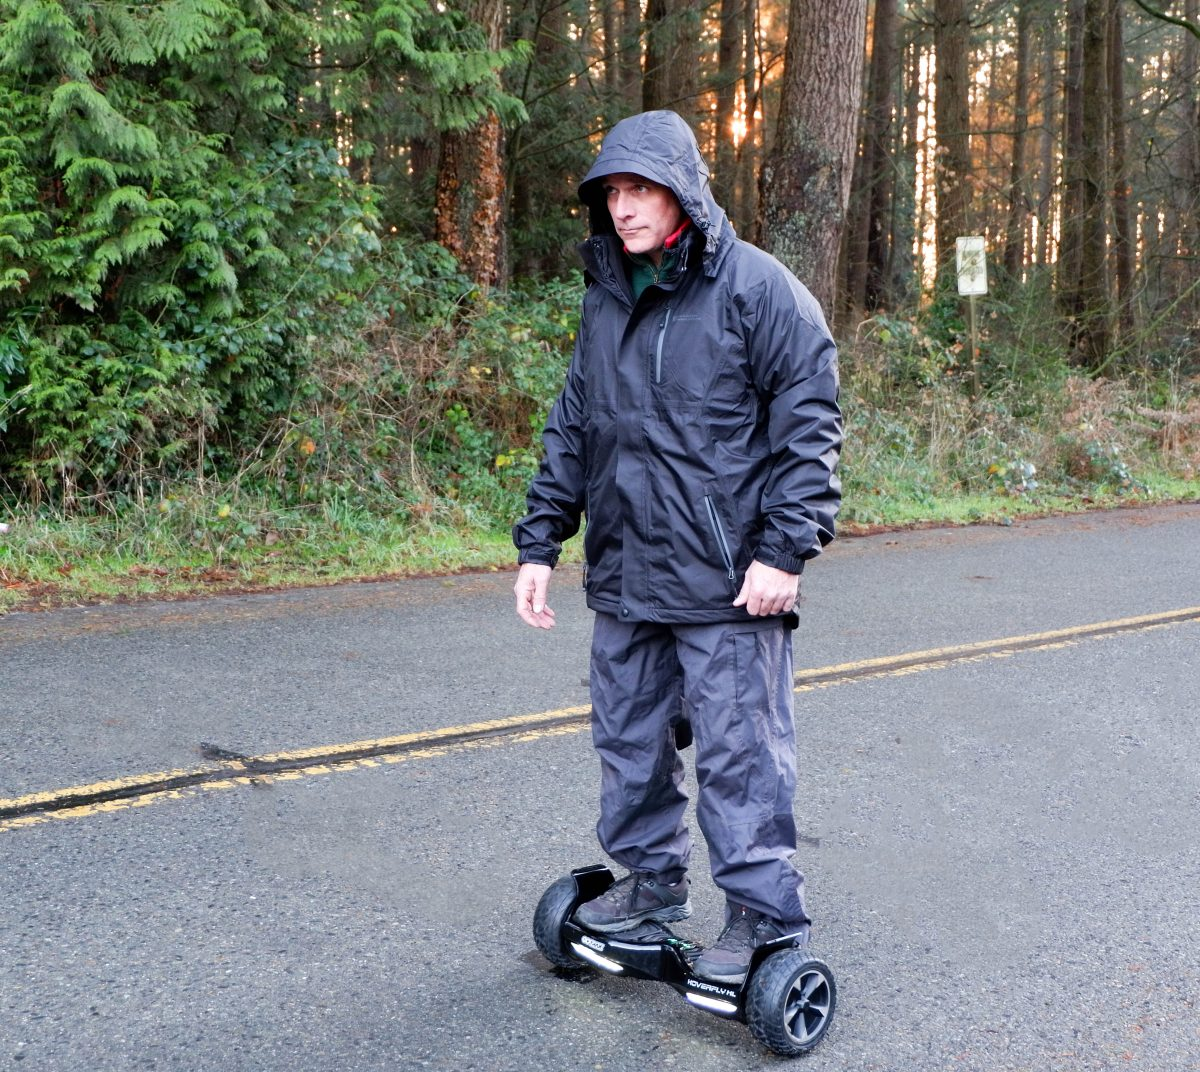 hoverfly hoverboard